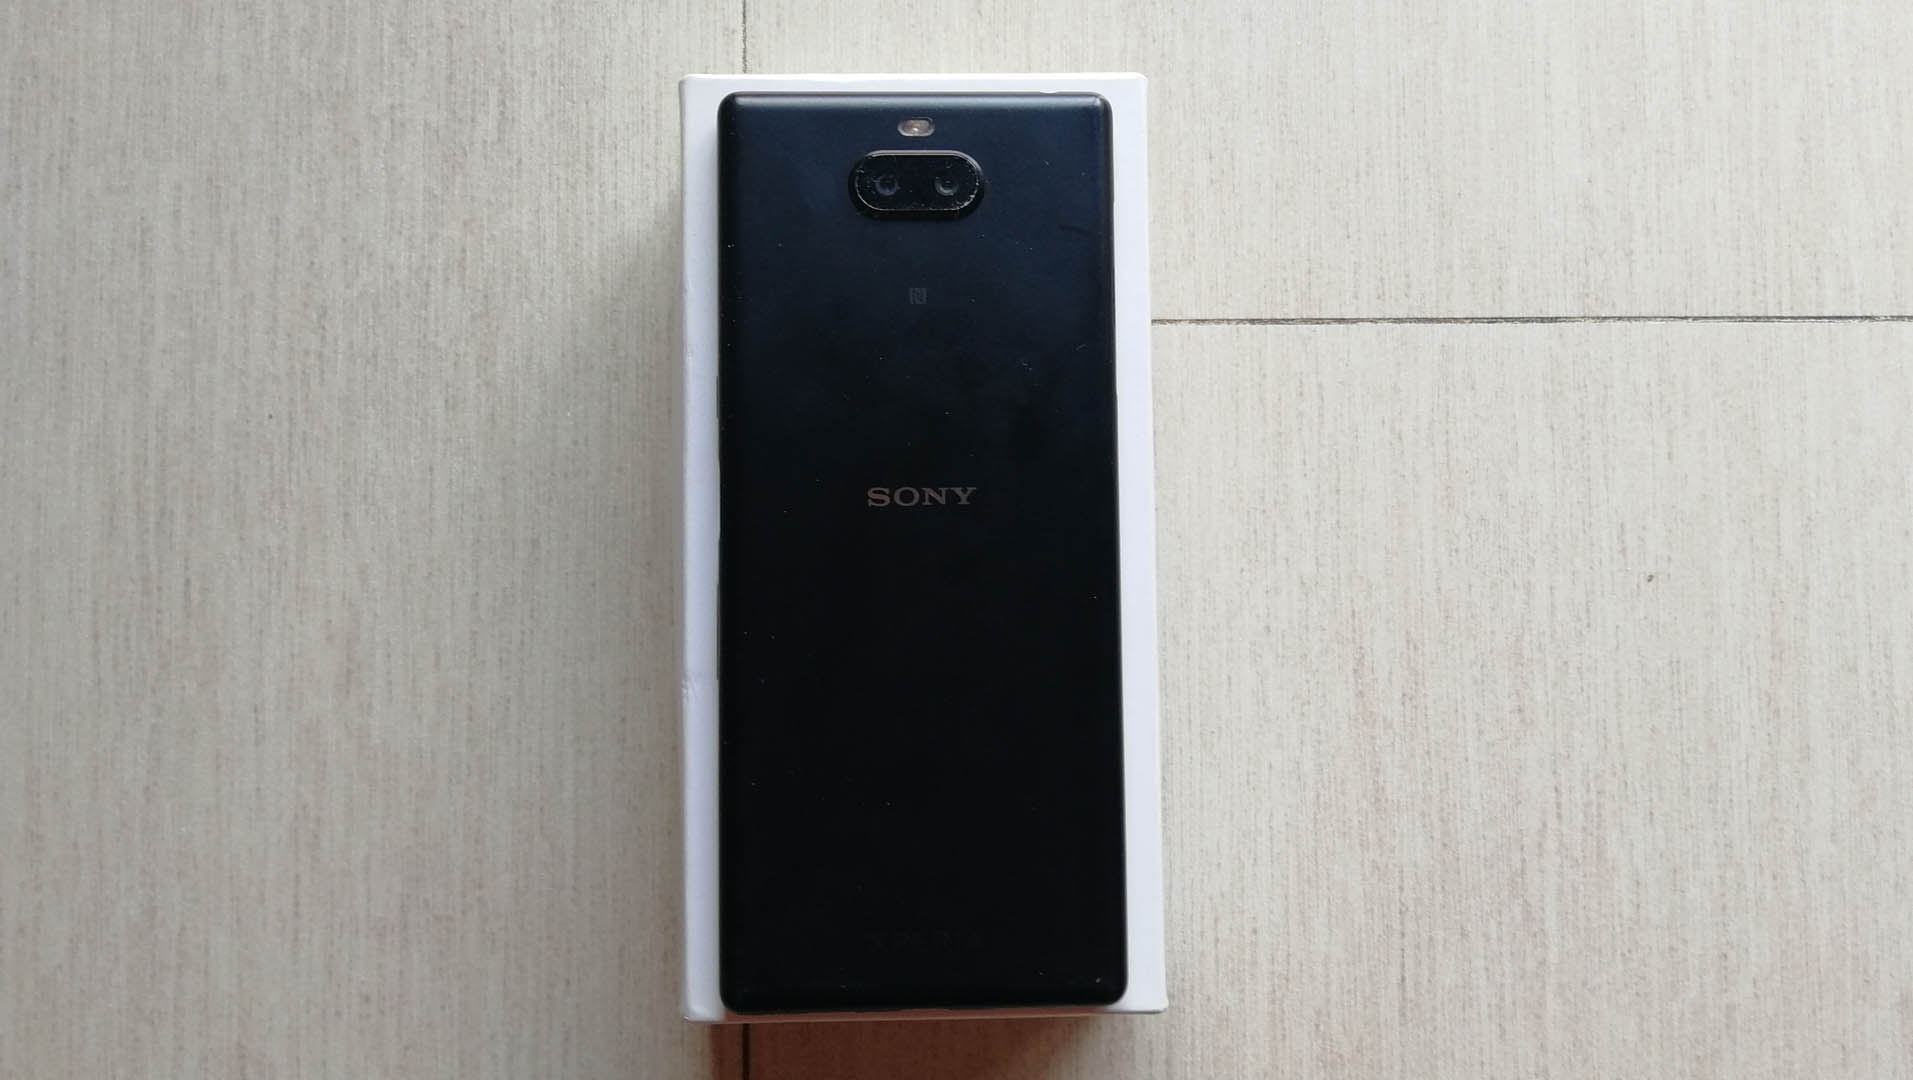 Sony Xperia 10 Plus retro